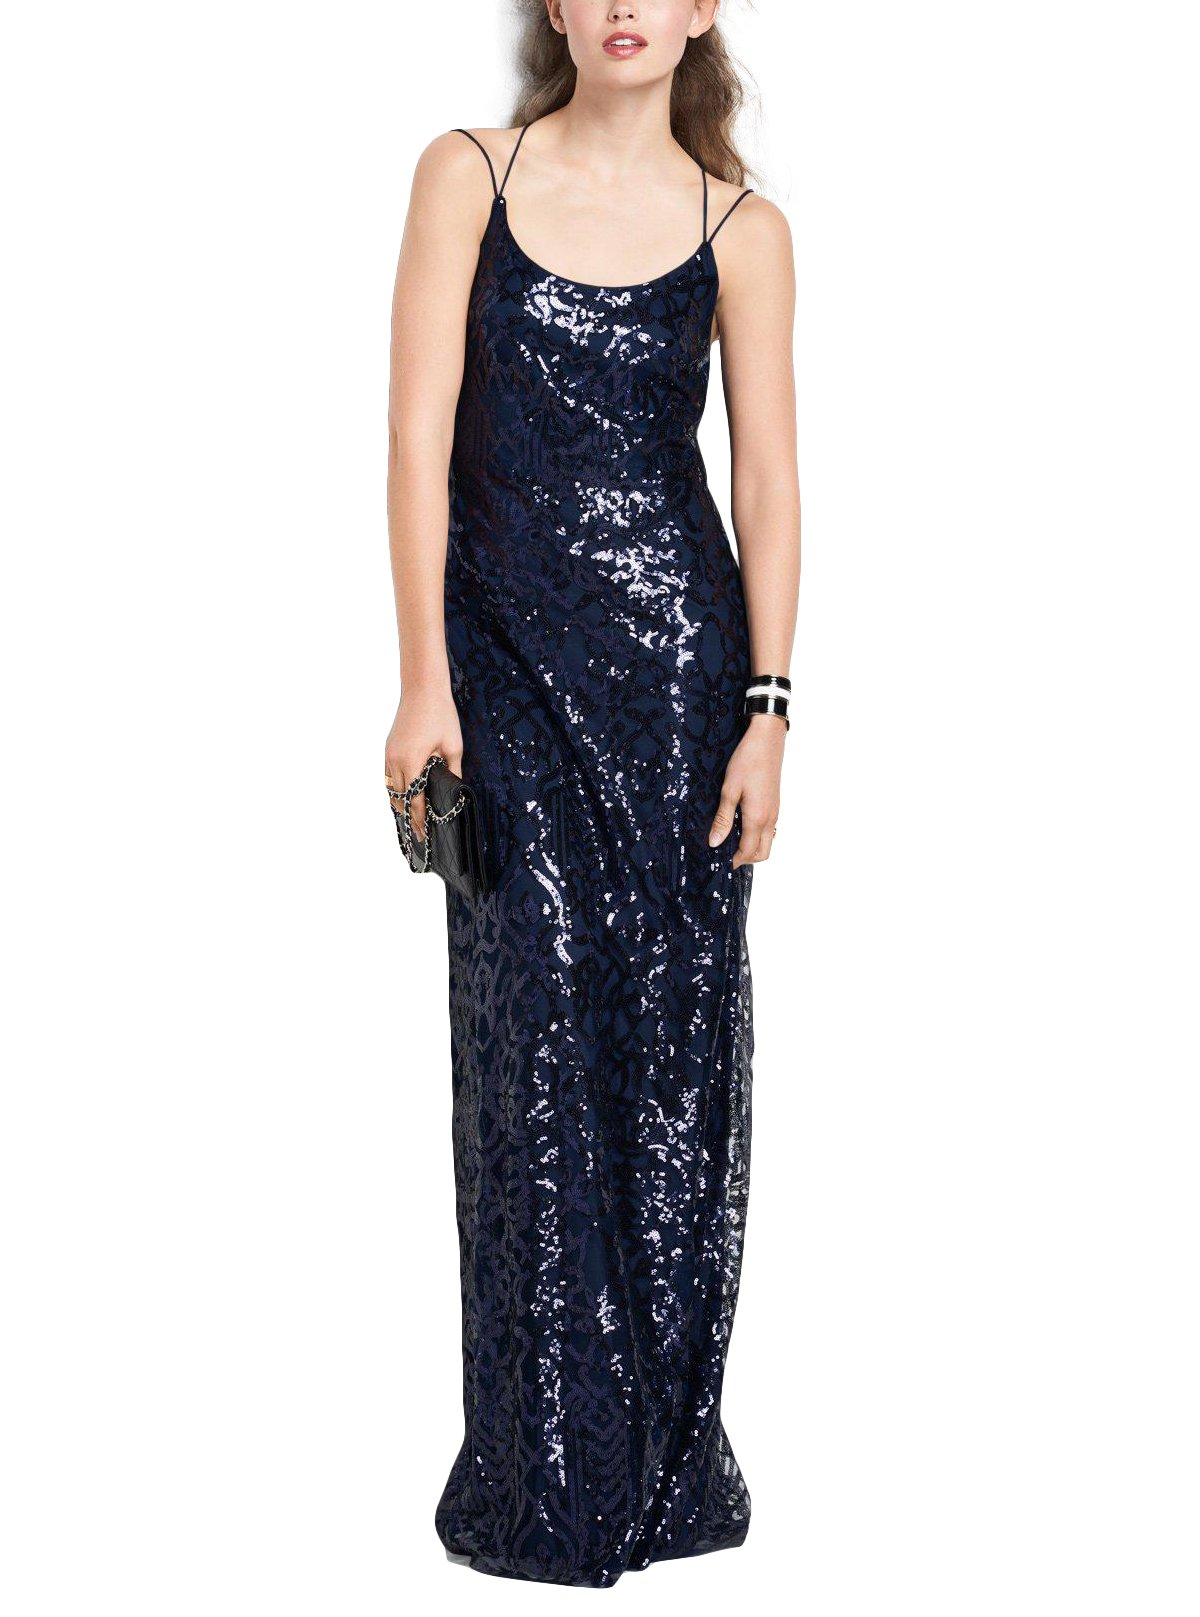 63aacf163cce7 Wtoo by Watters Style 555 Bridesmaid Dress | Brideside